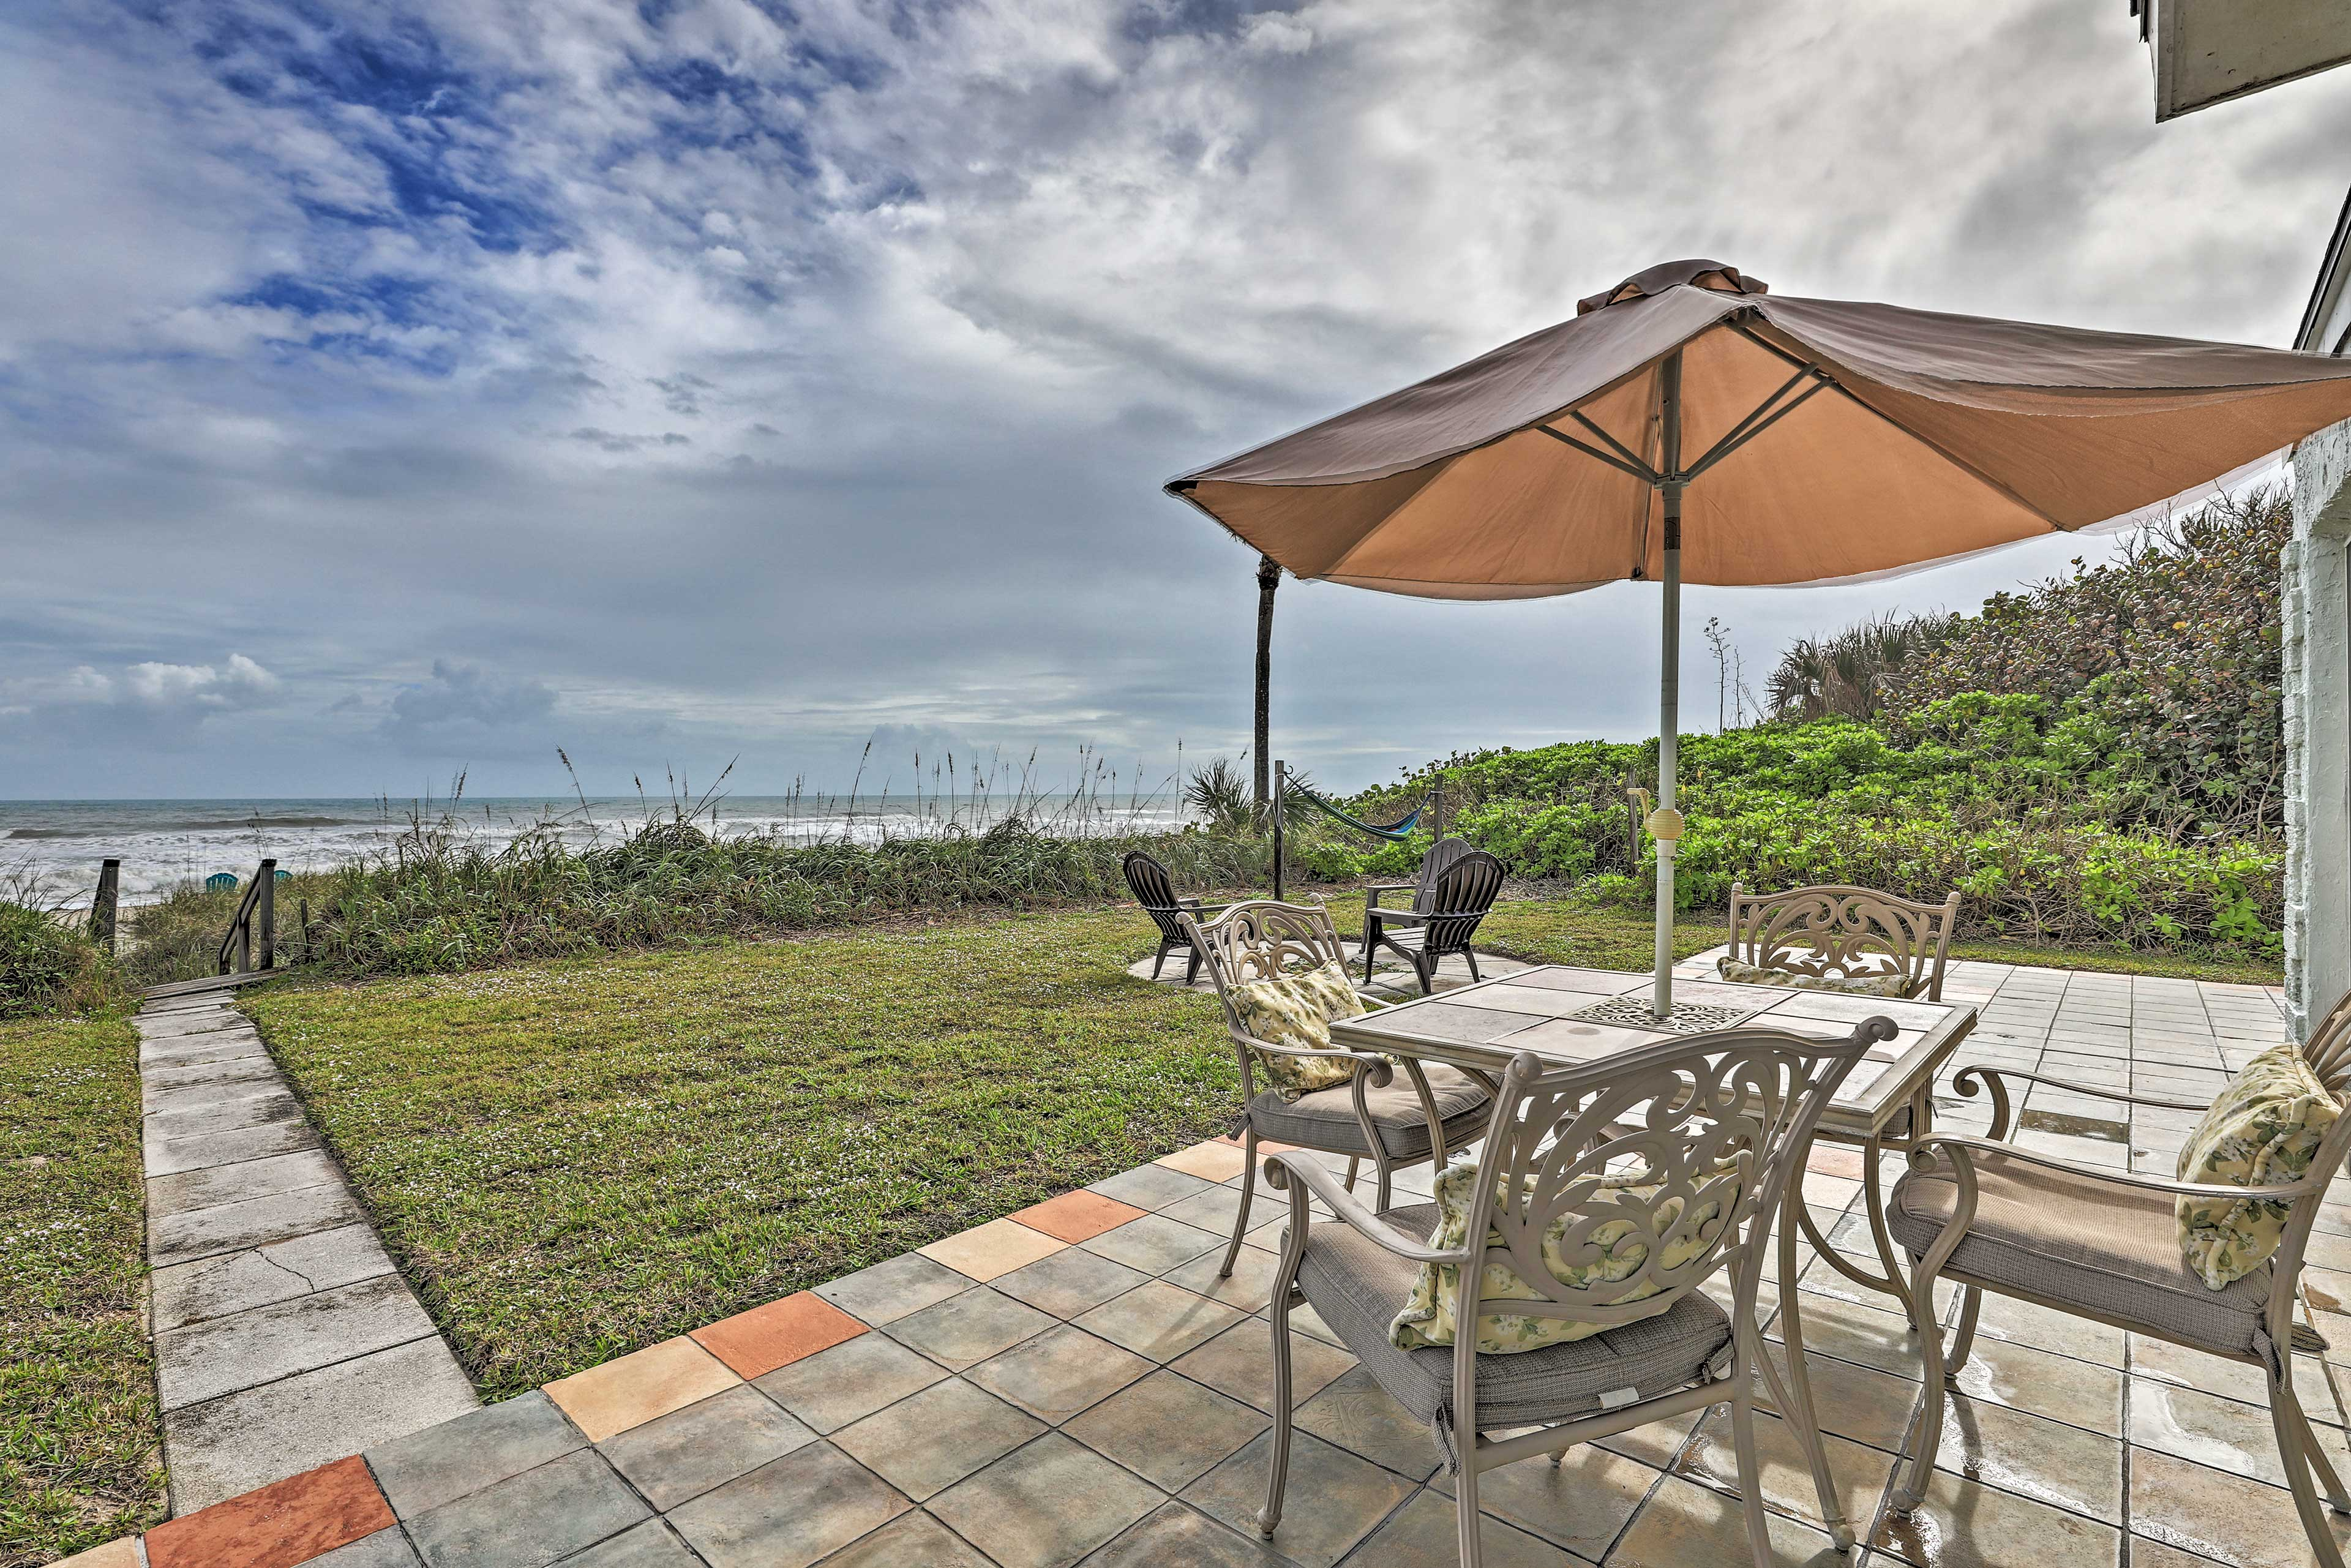 Sit out on the patio and take in ocean views.